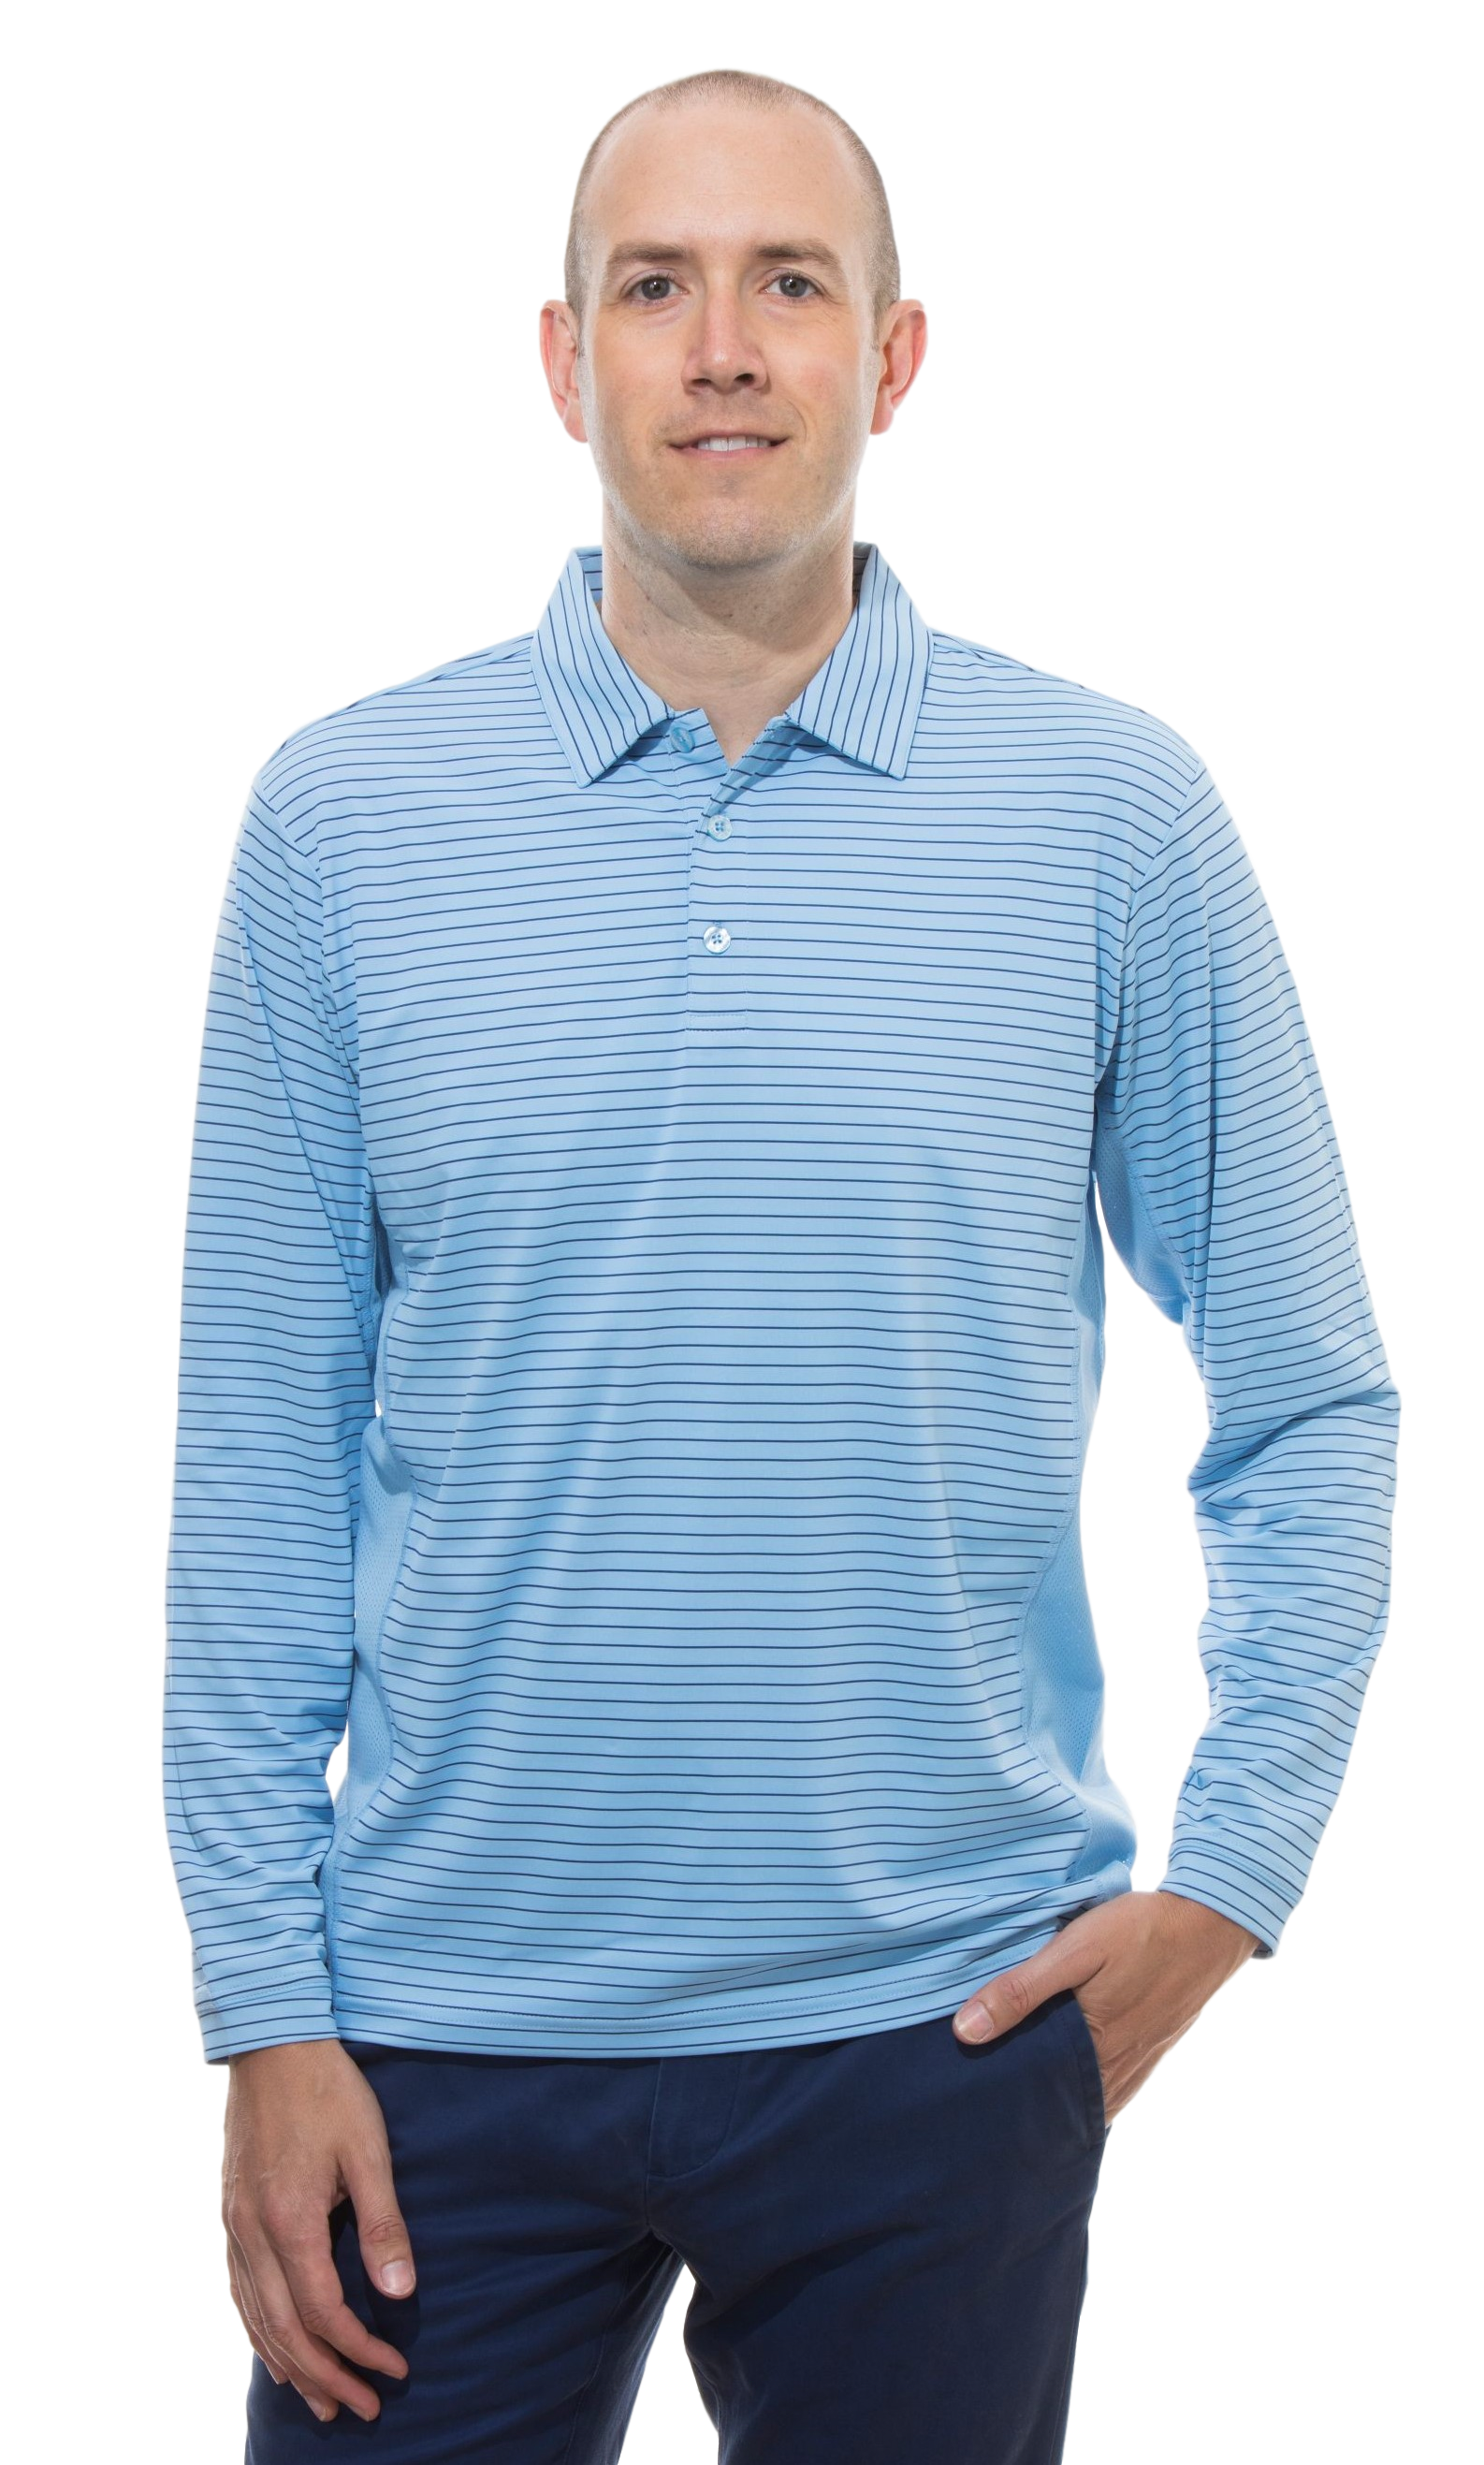 900824S SanSoleil Men'S Solcool Long Sleeve Stripe Button Polo-Vintage Blue with Submarine Bue Stripe